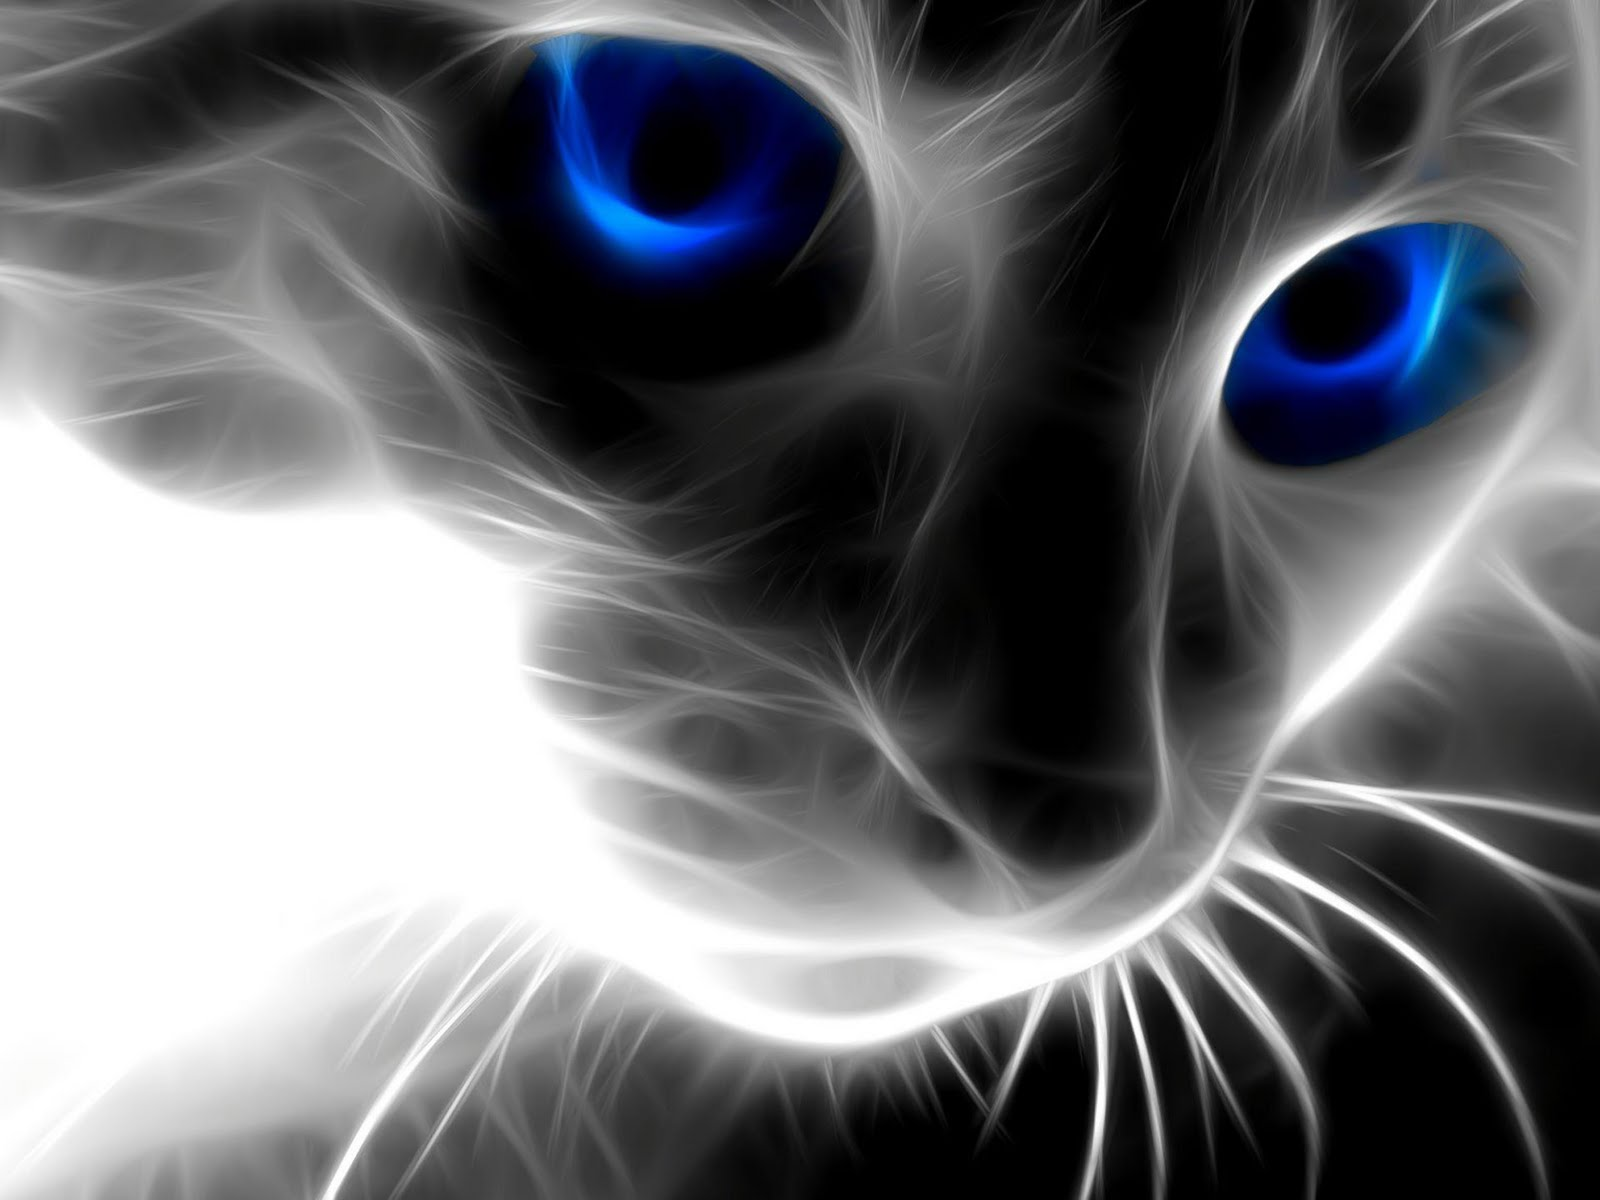 http://1.bp.blogspot.com/-D4xNYLZPxs8/Th1Z0t3KOlI/AAAAAAAAMtA/du4ZLpE_mkY/s1600/animal-wallpapers-Cat_wallpaper.jpg